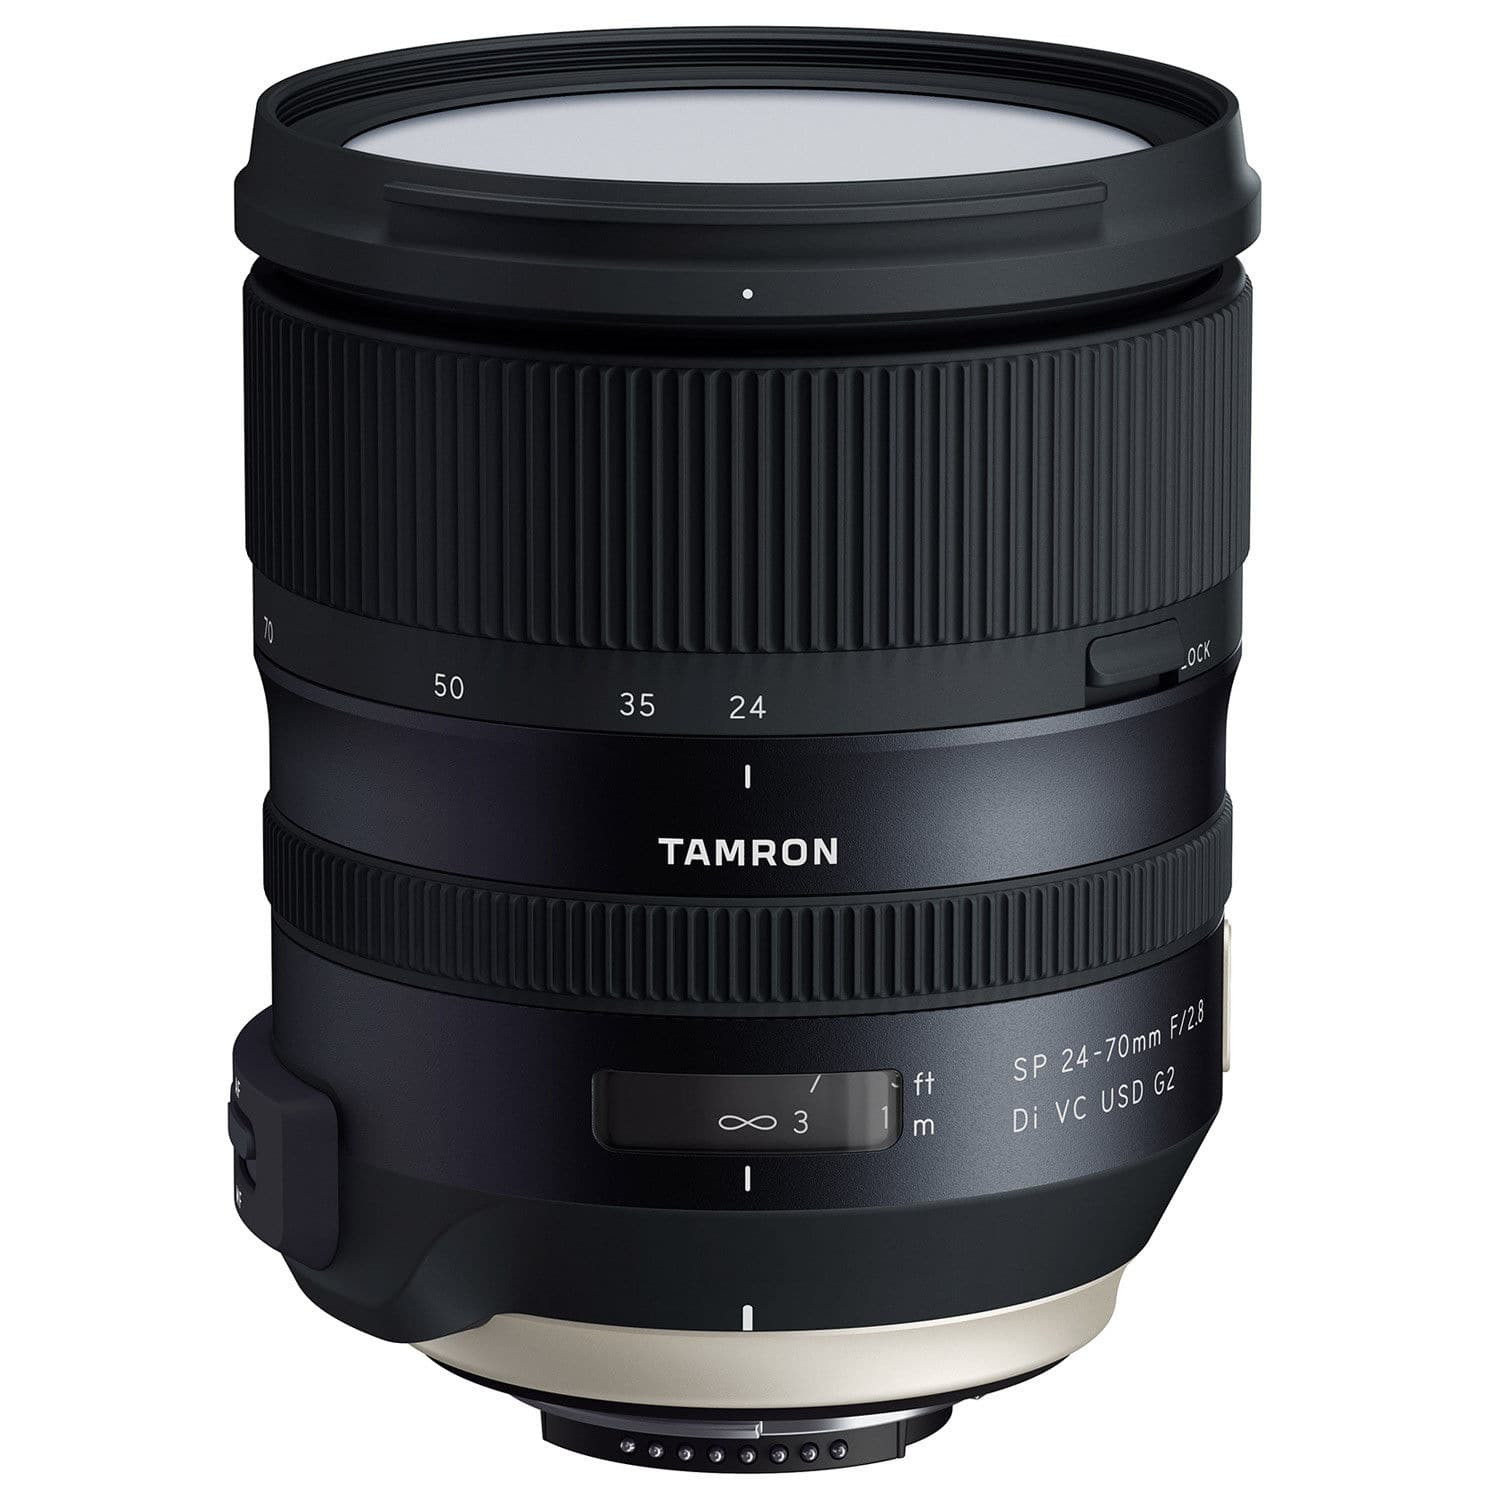 Tamron Lenses: 18-400mm f/3.5-6.3 Di II VC HLD + TAP-in Console for Nikon or Canon $446.25 (or less) + Free Shipping w/ Google Express